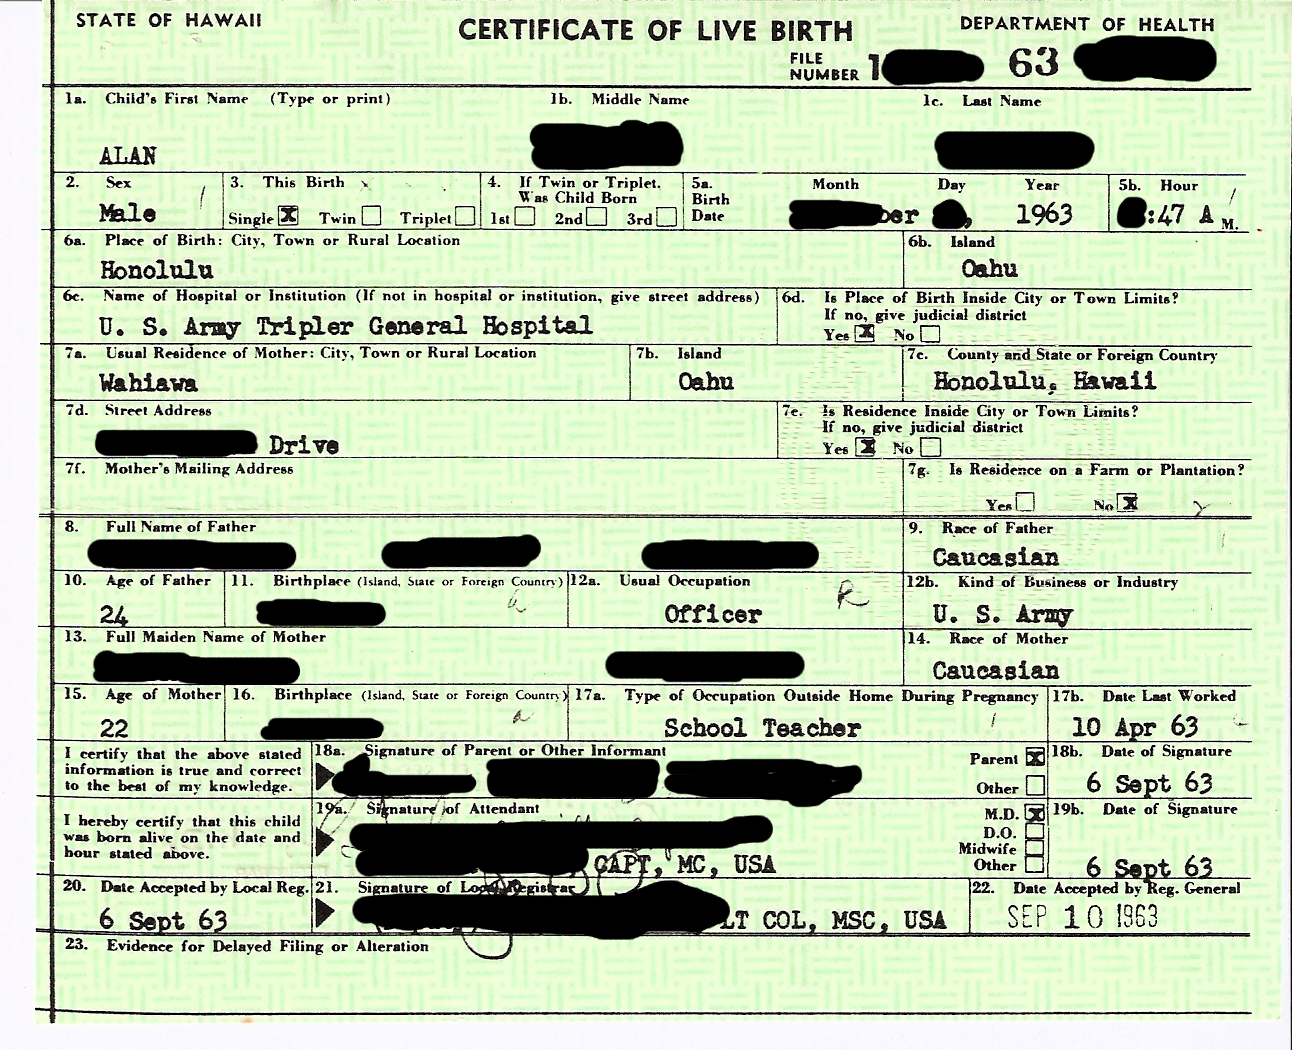 Hawaii birth certificate 1963 snarkybytes hawaii birth certificate 1963 yelopaper Choice Image